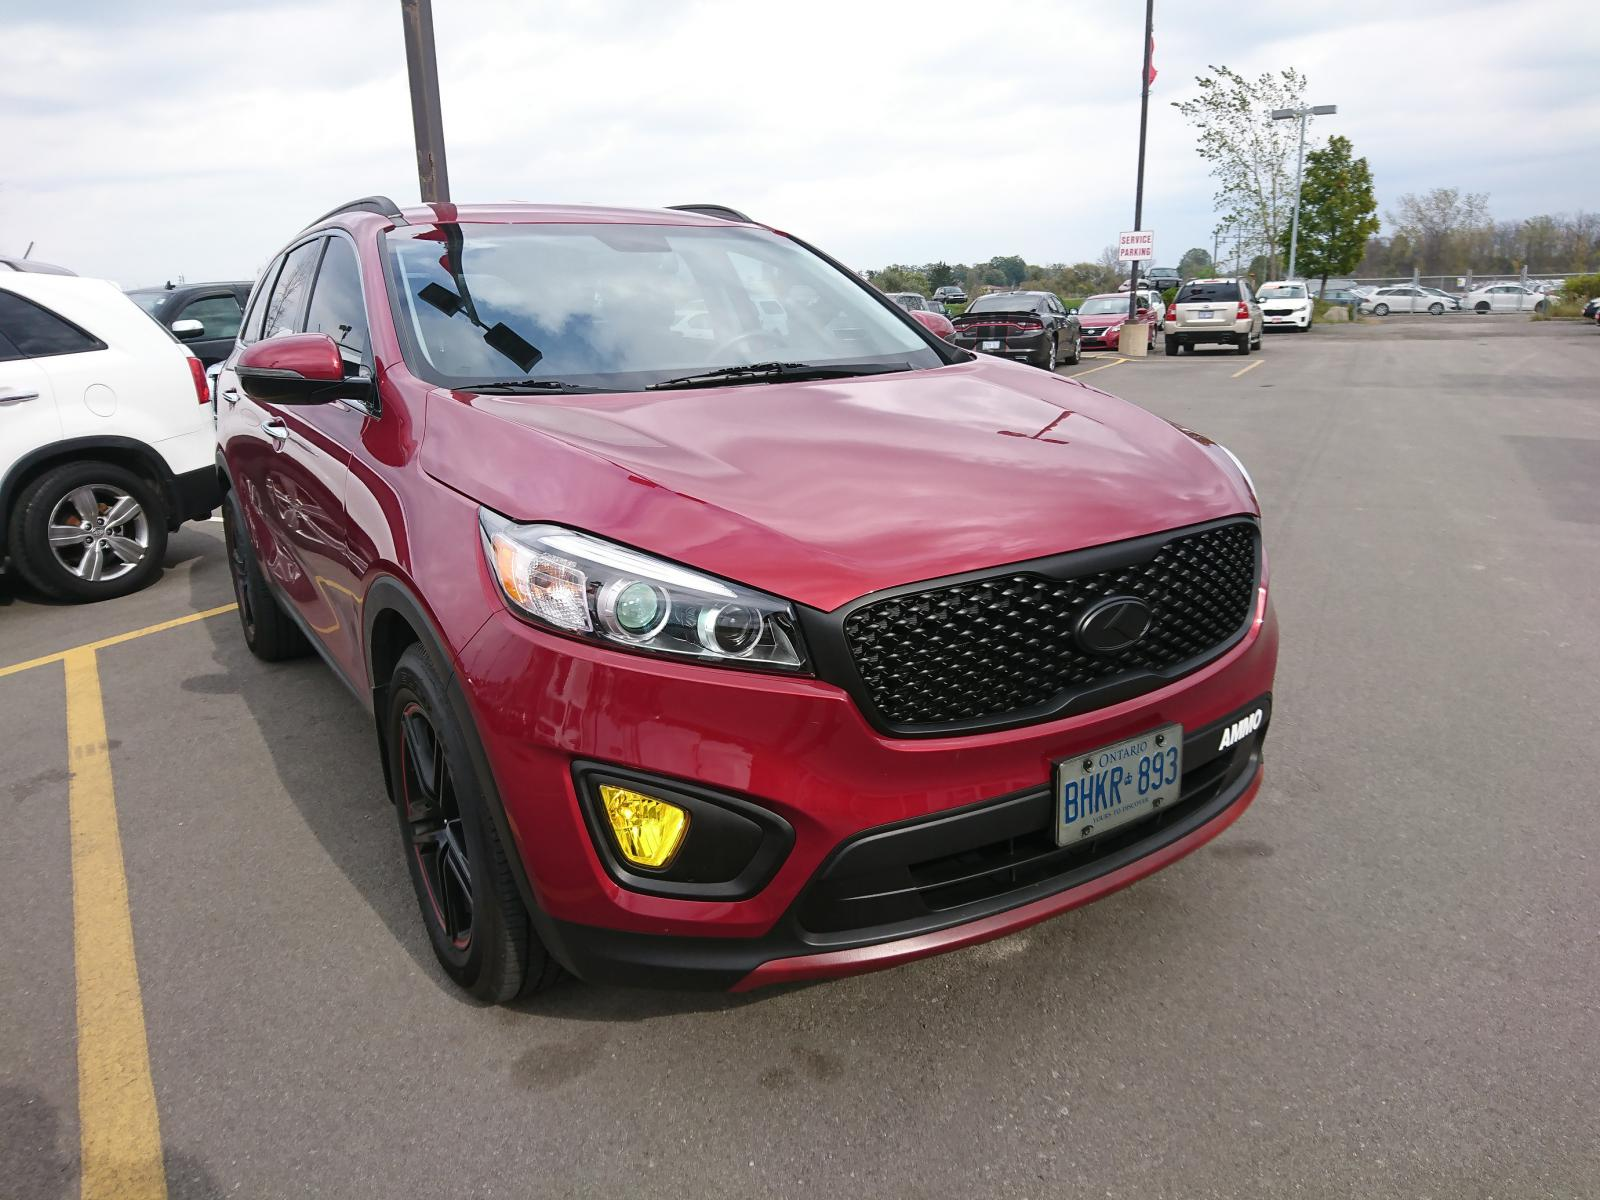 2017 Kia Soo Lx V6 Best New Cars For 2018